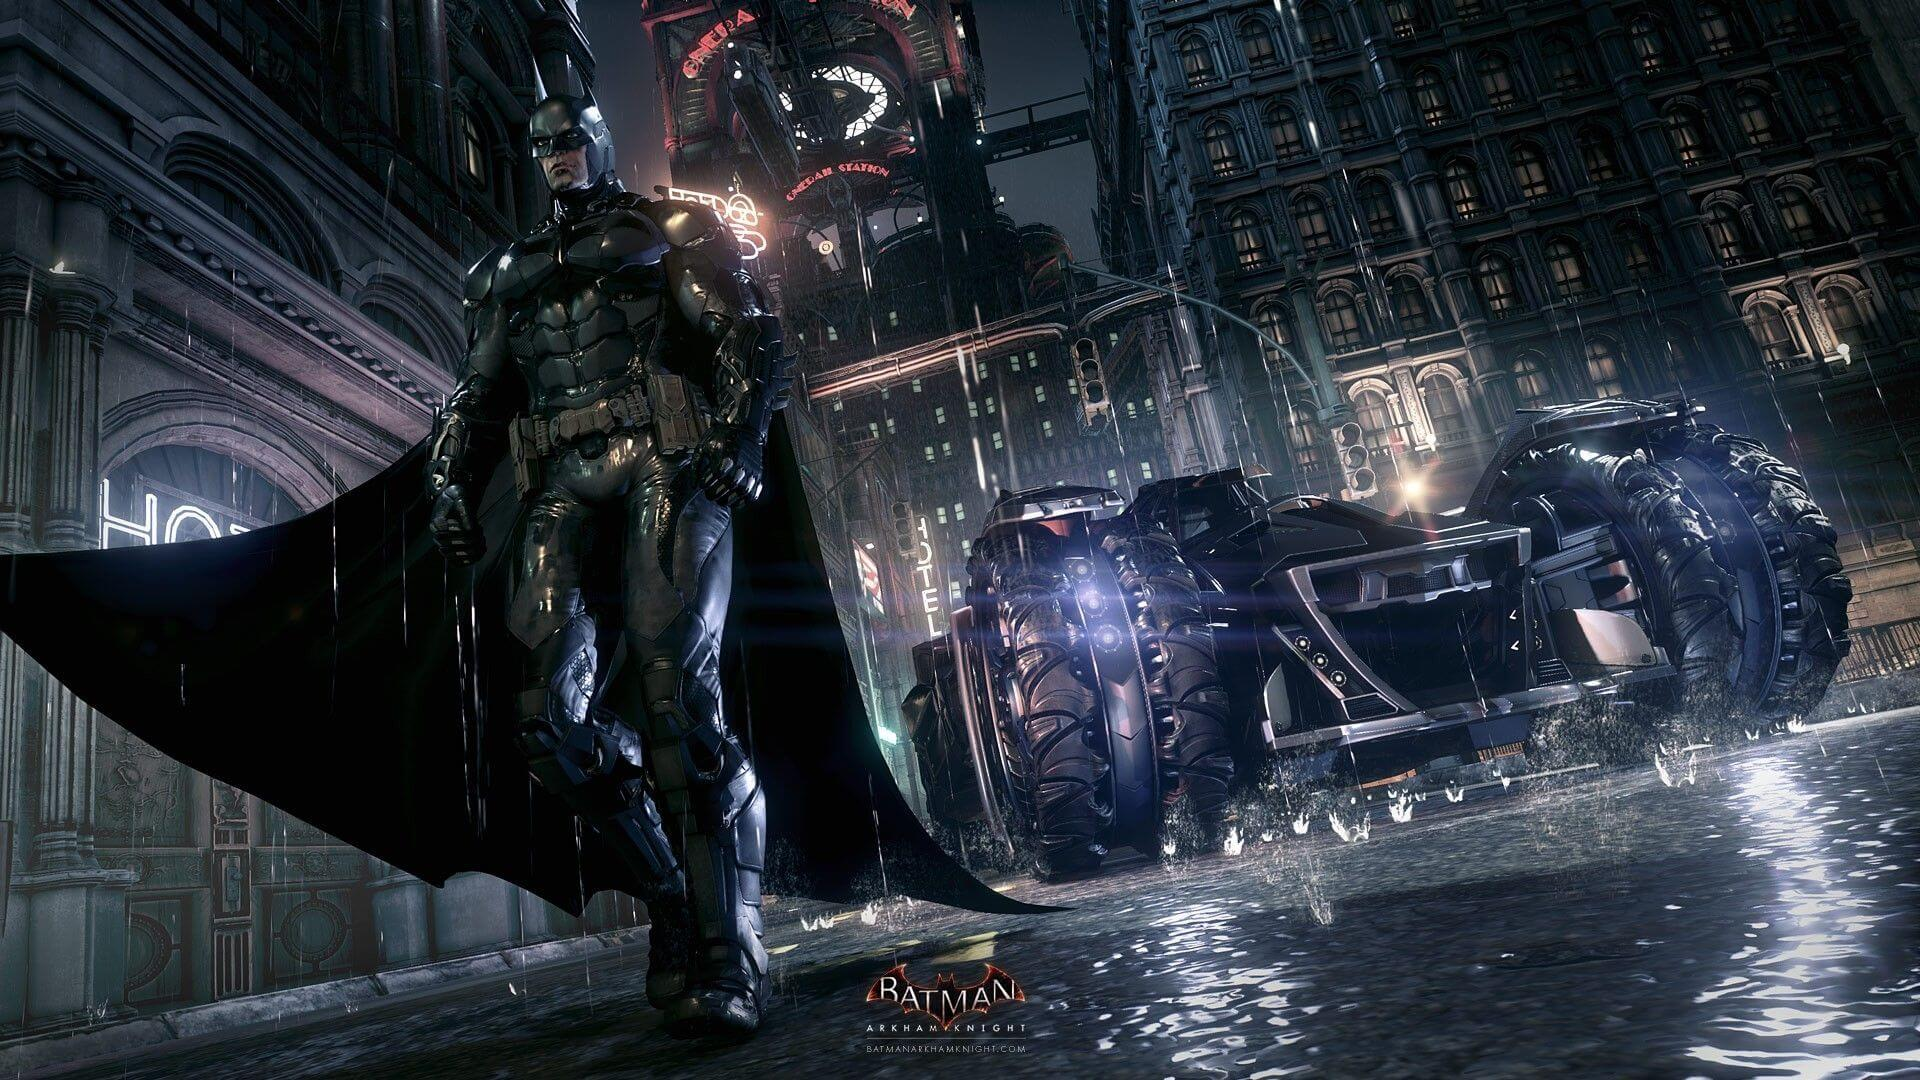 пример игры Batman: Arkham Knight с геймплеем